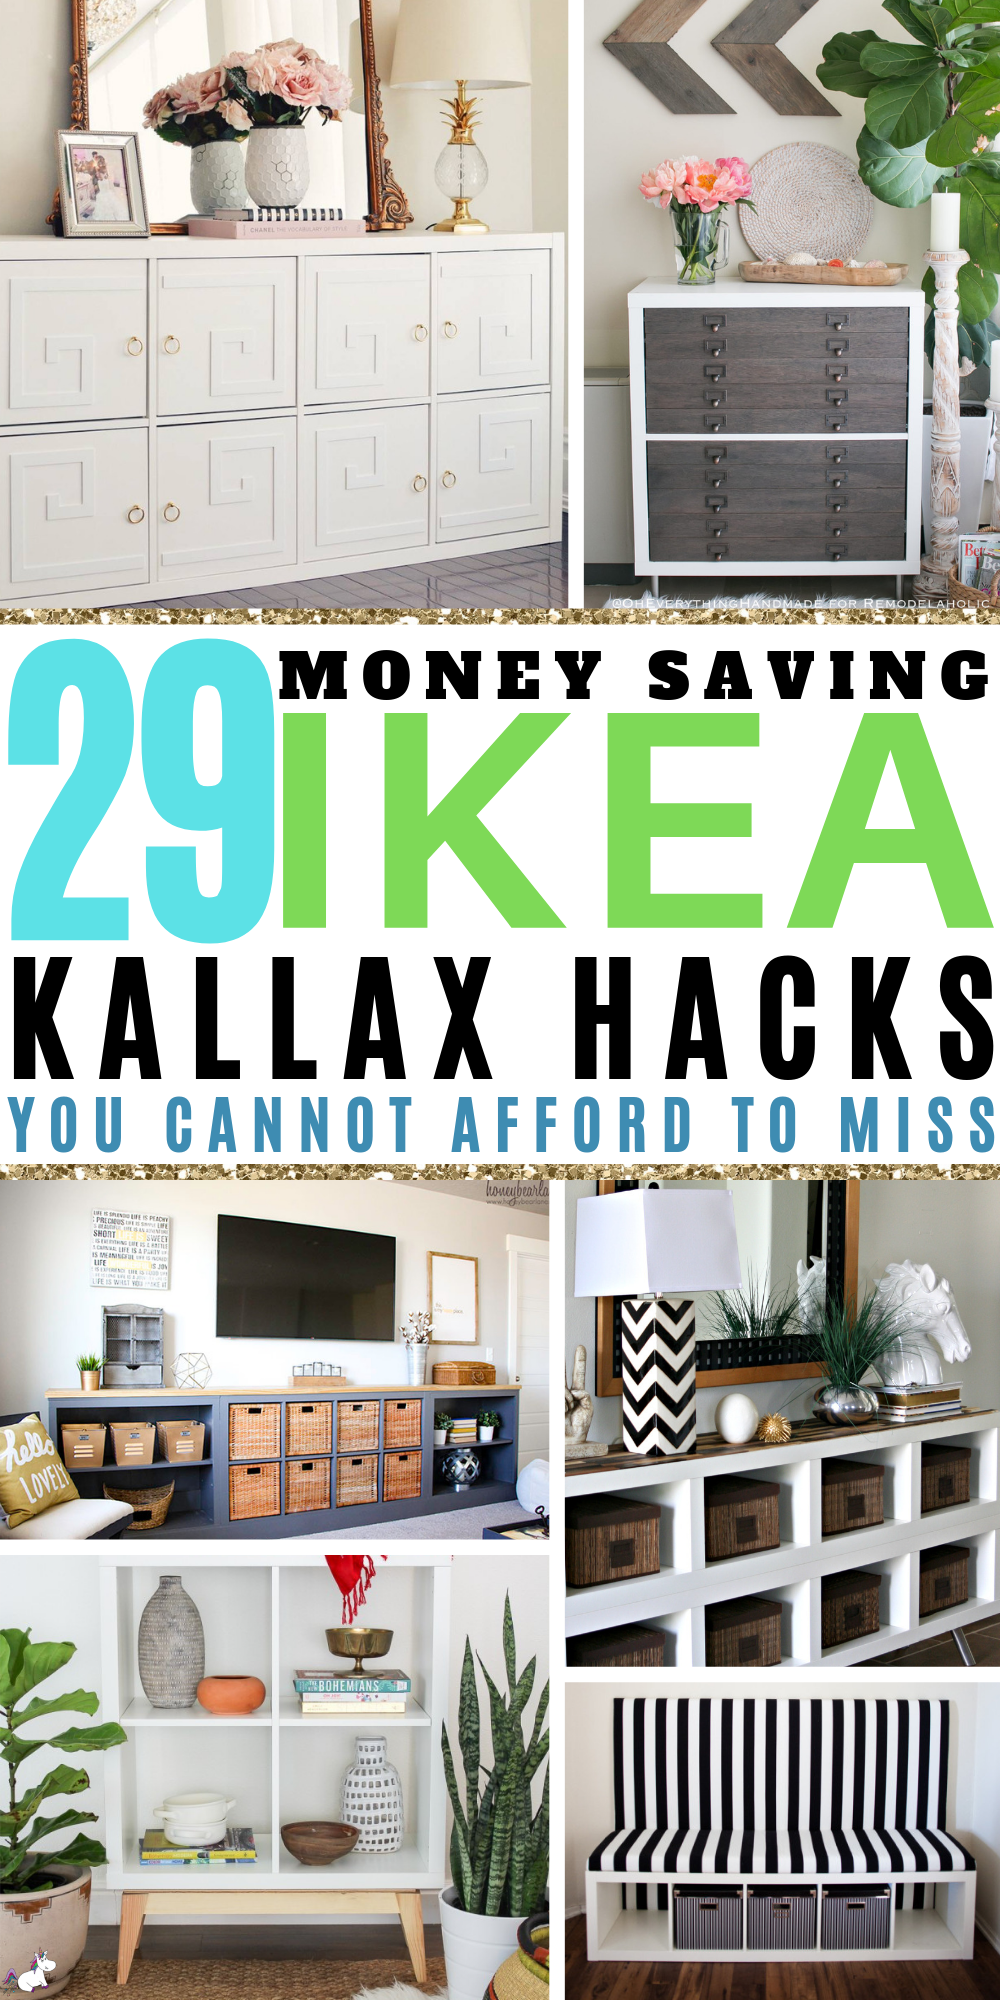 29 Money Saving Ikea Kallax Hacks |for Your Bedroom, Bathroom, Kitchen, Enntryway & More! #ikeakallaxhacks #ikeahacks #bestikeahacks #homedecoronabudget